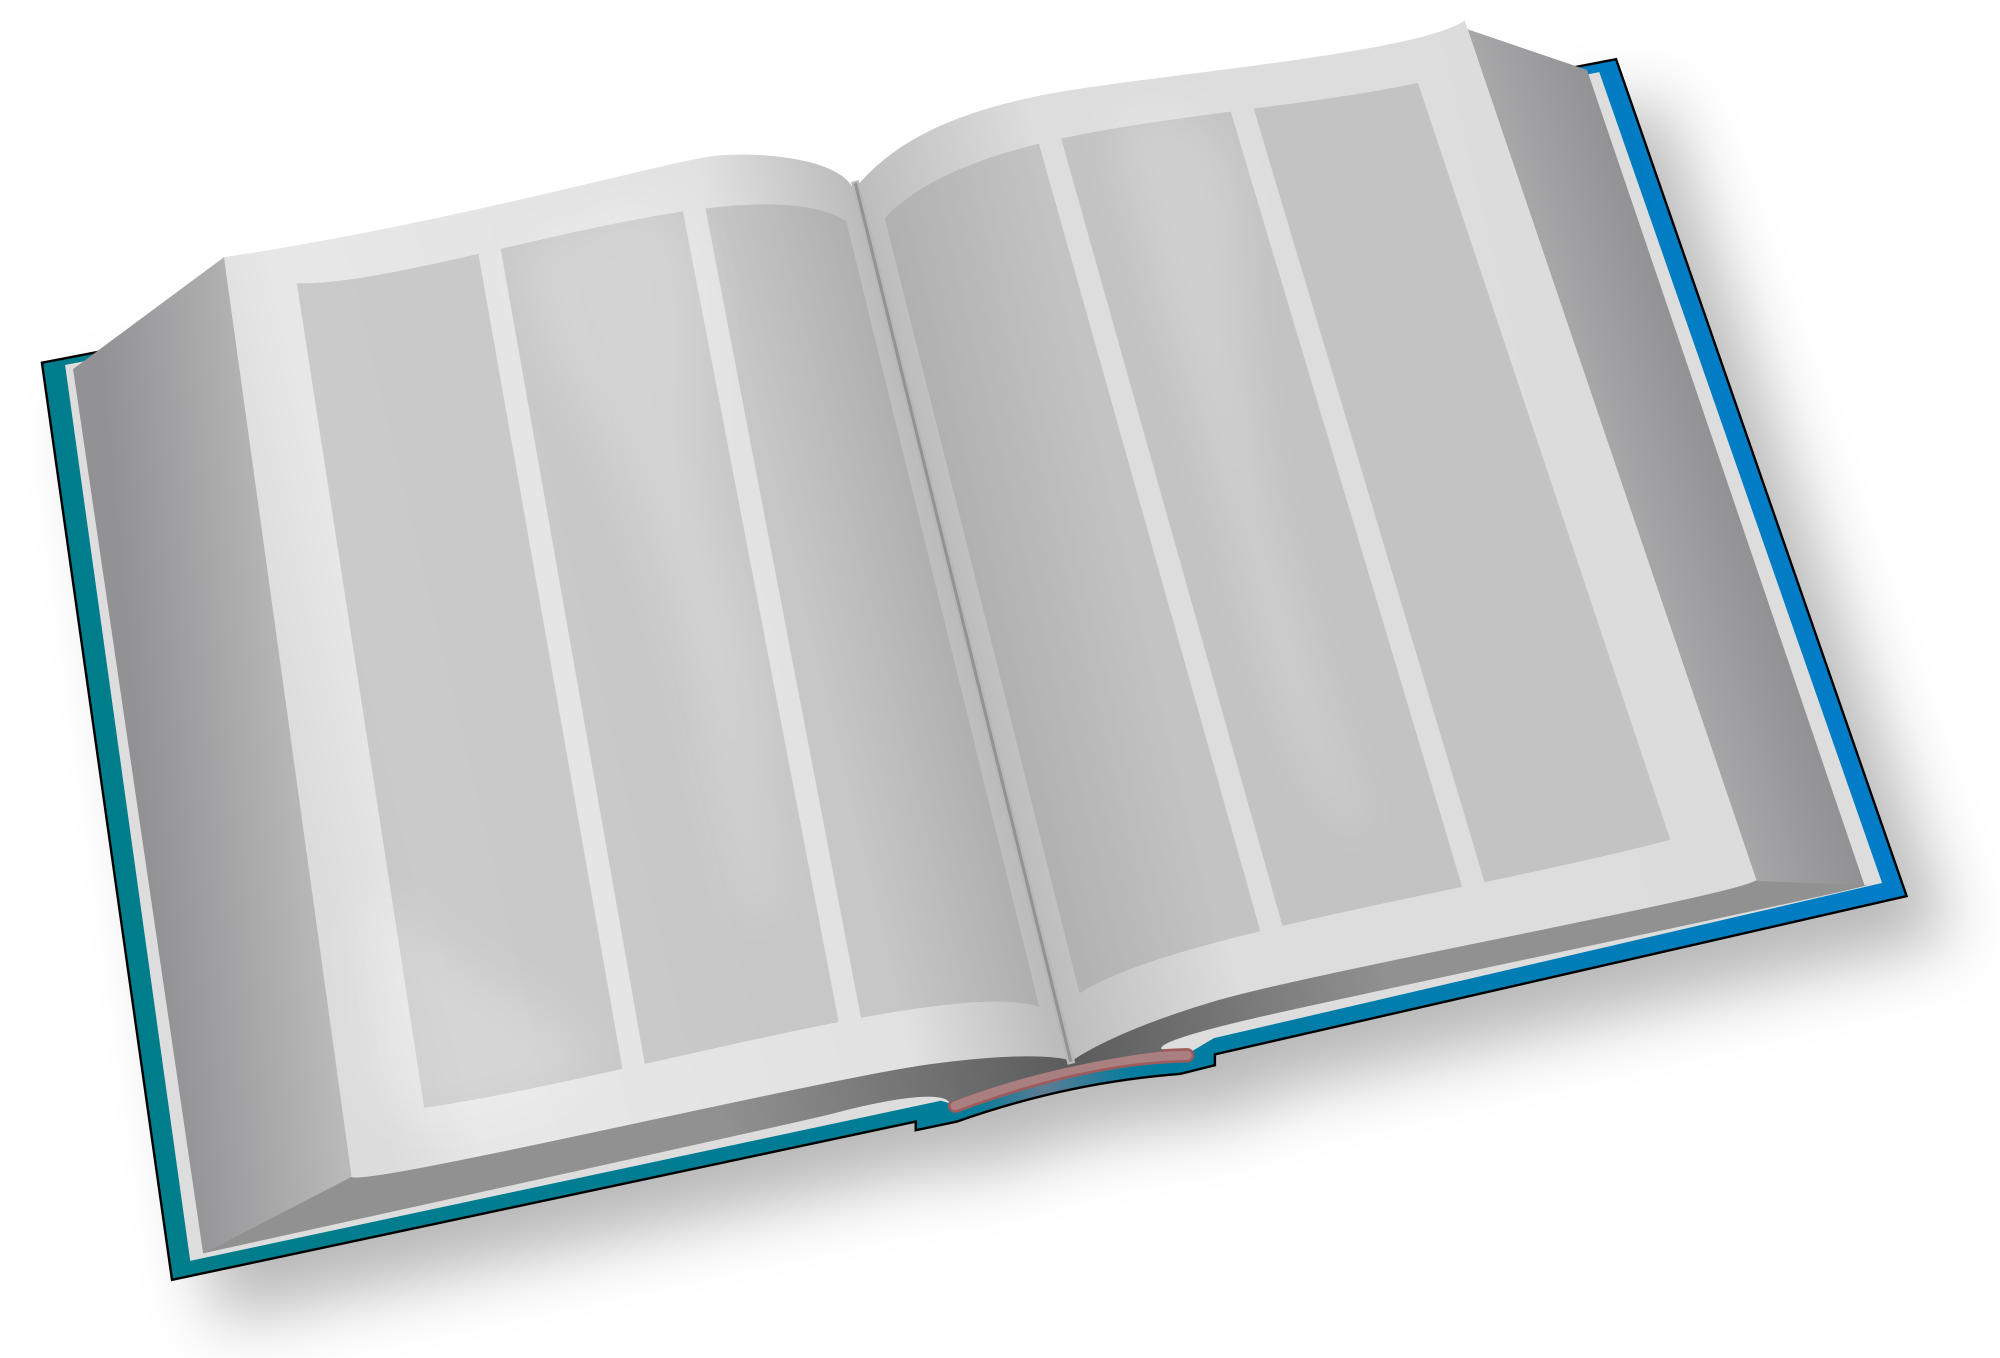 Big book clipart png transparent stock File:Big Book blue.svg - Wikimedia Commons png transparent stock